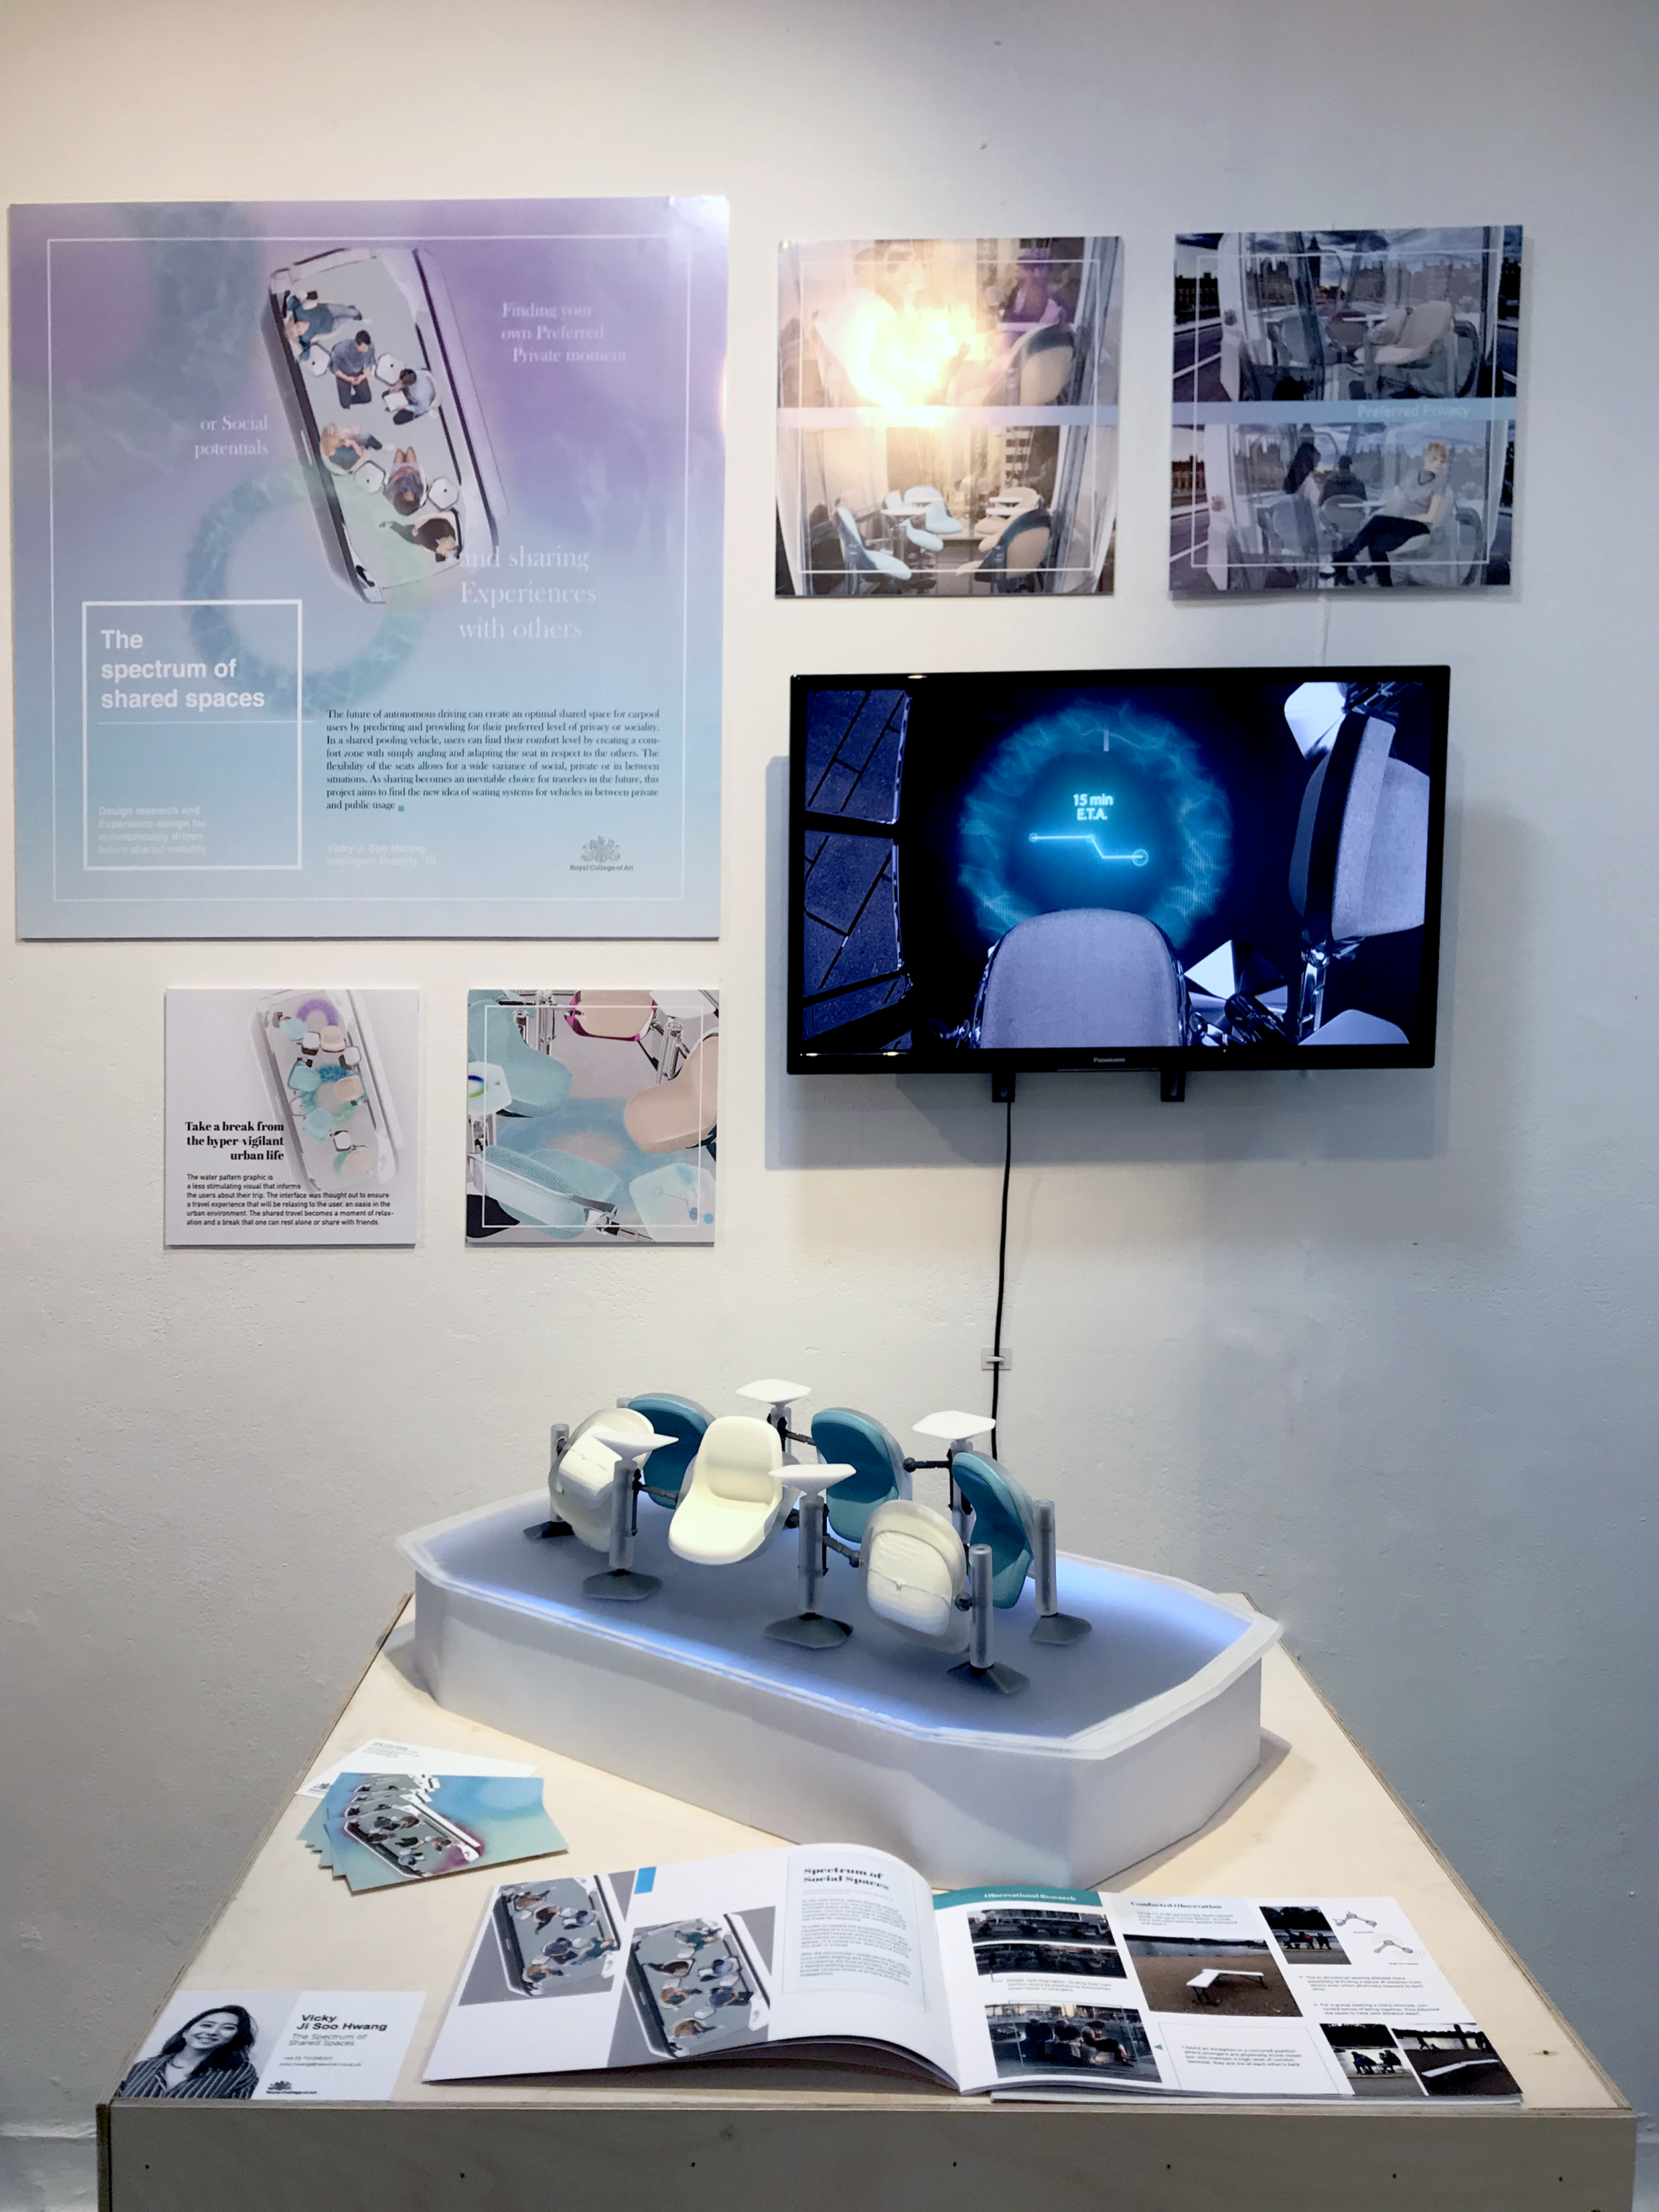 Exhibited at the Royal College of Art IM graduate Show - 18/02- 24/02 2019